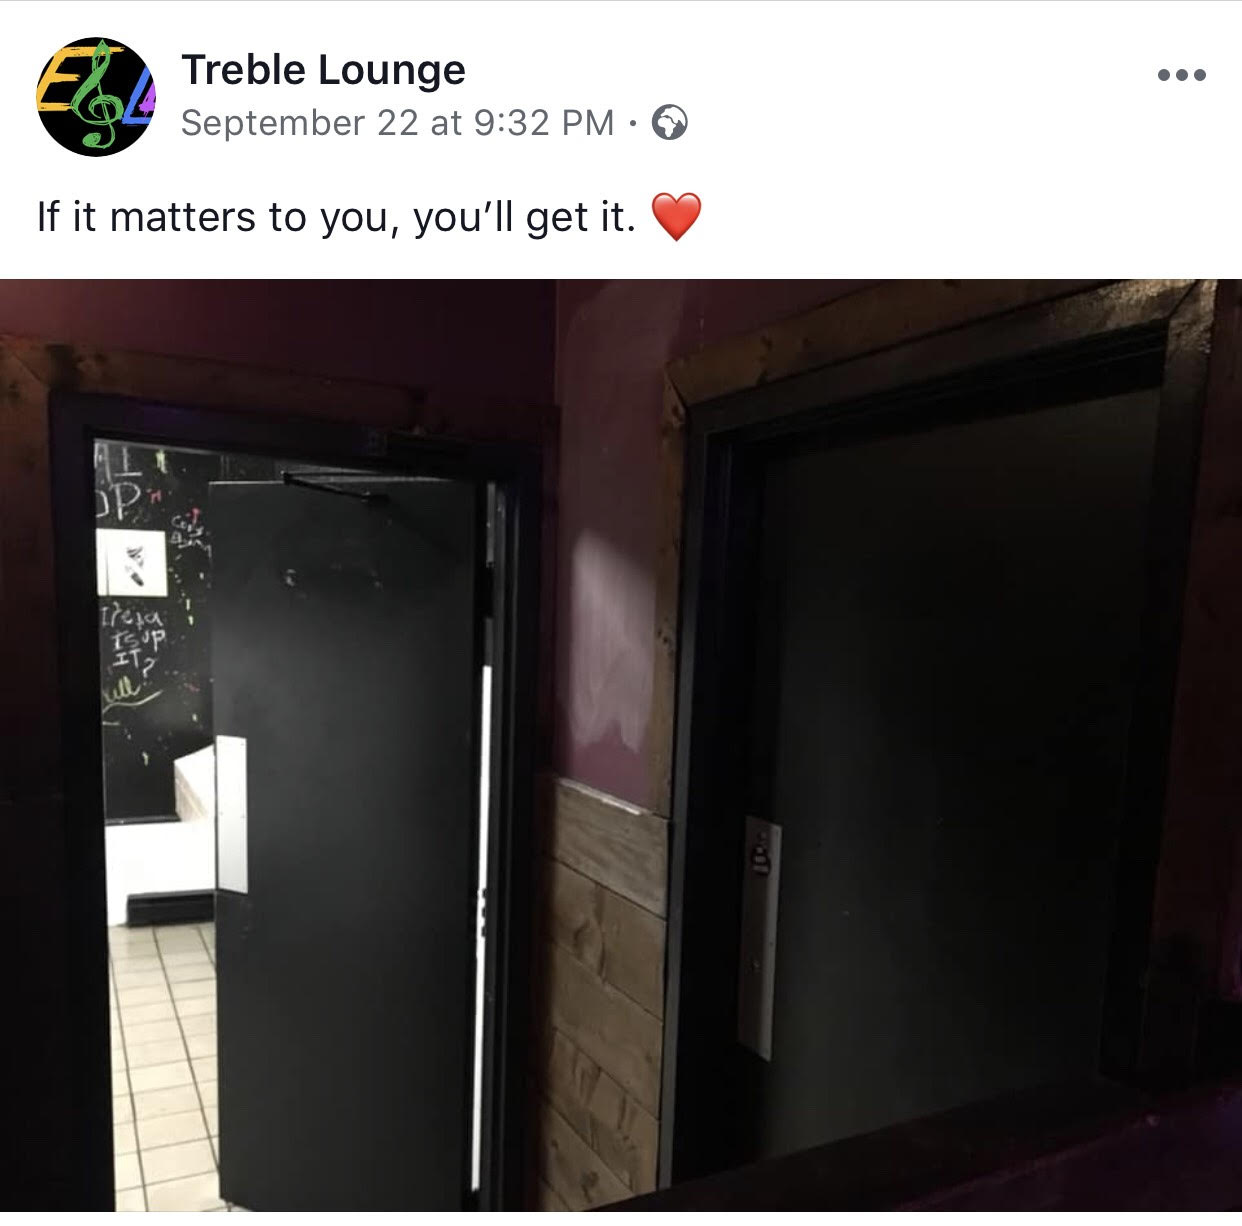 Photo borrowed from Treble Lounge's Facebook page.